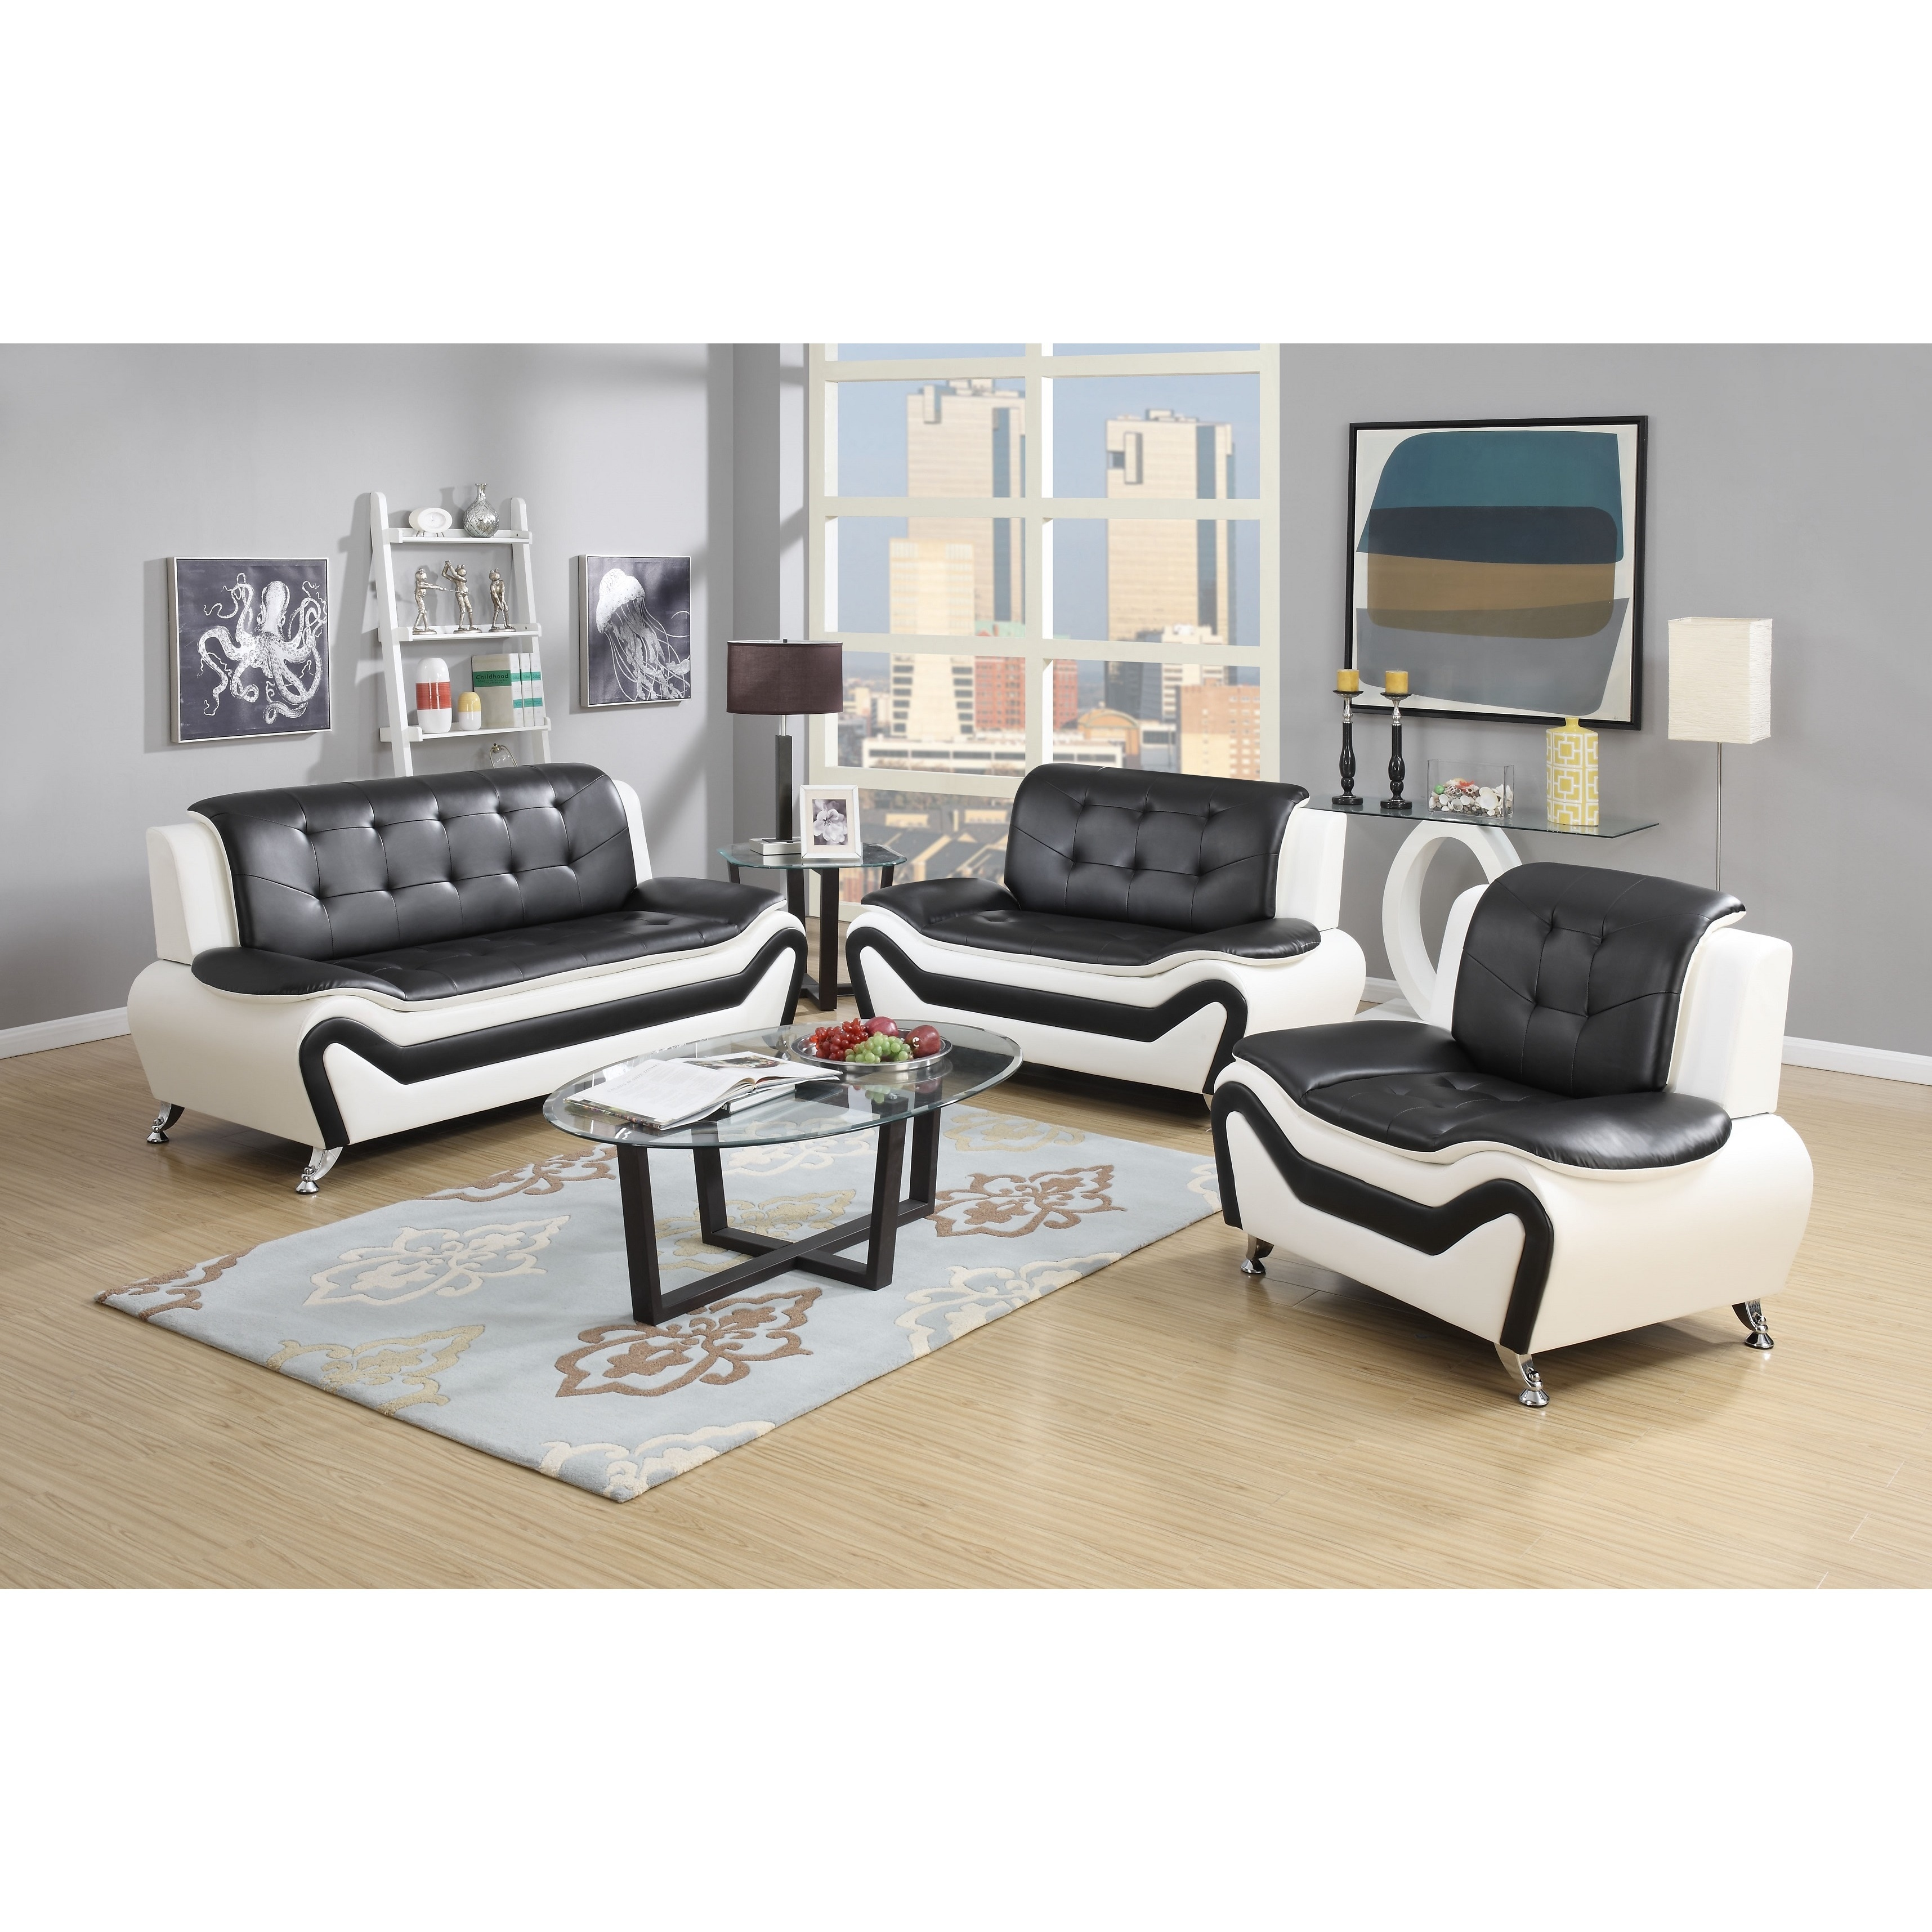 Wondrous Wanda 3 Piece Modern Bonded Leather Sofa Set Gamerscity Chair Design For Home Gamerscityorg